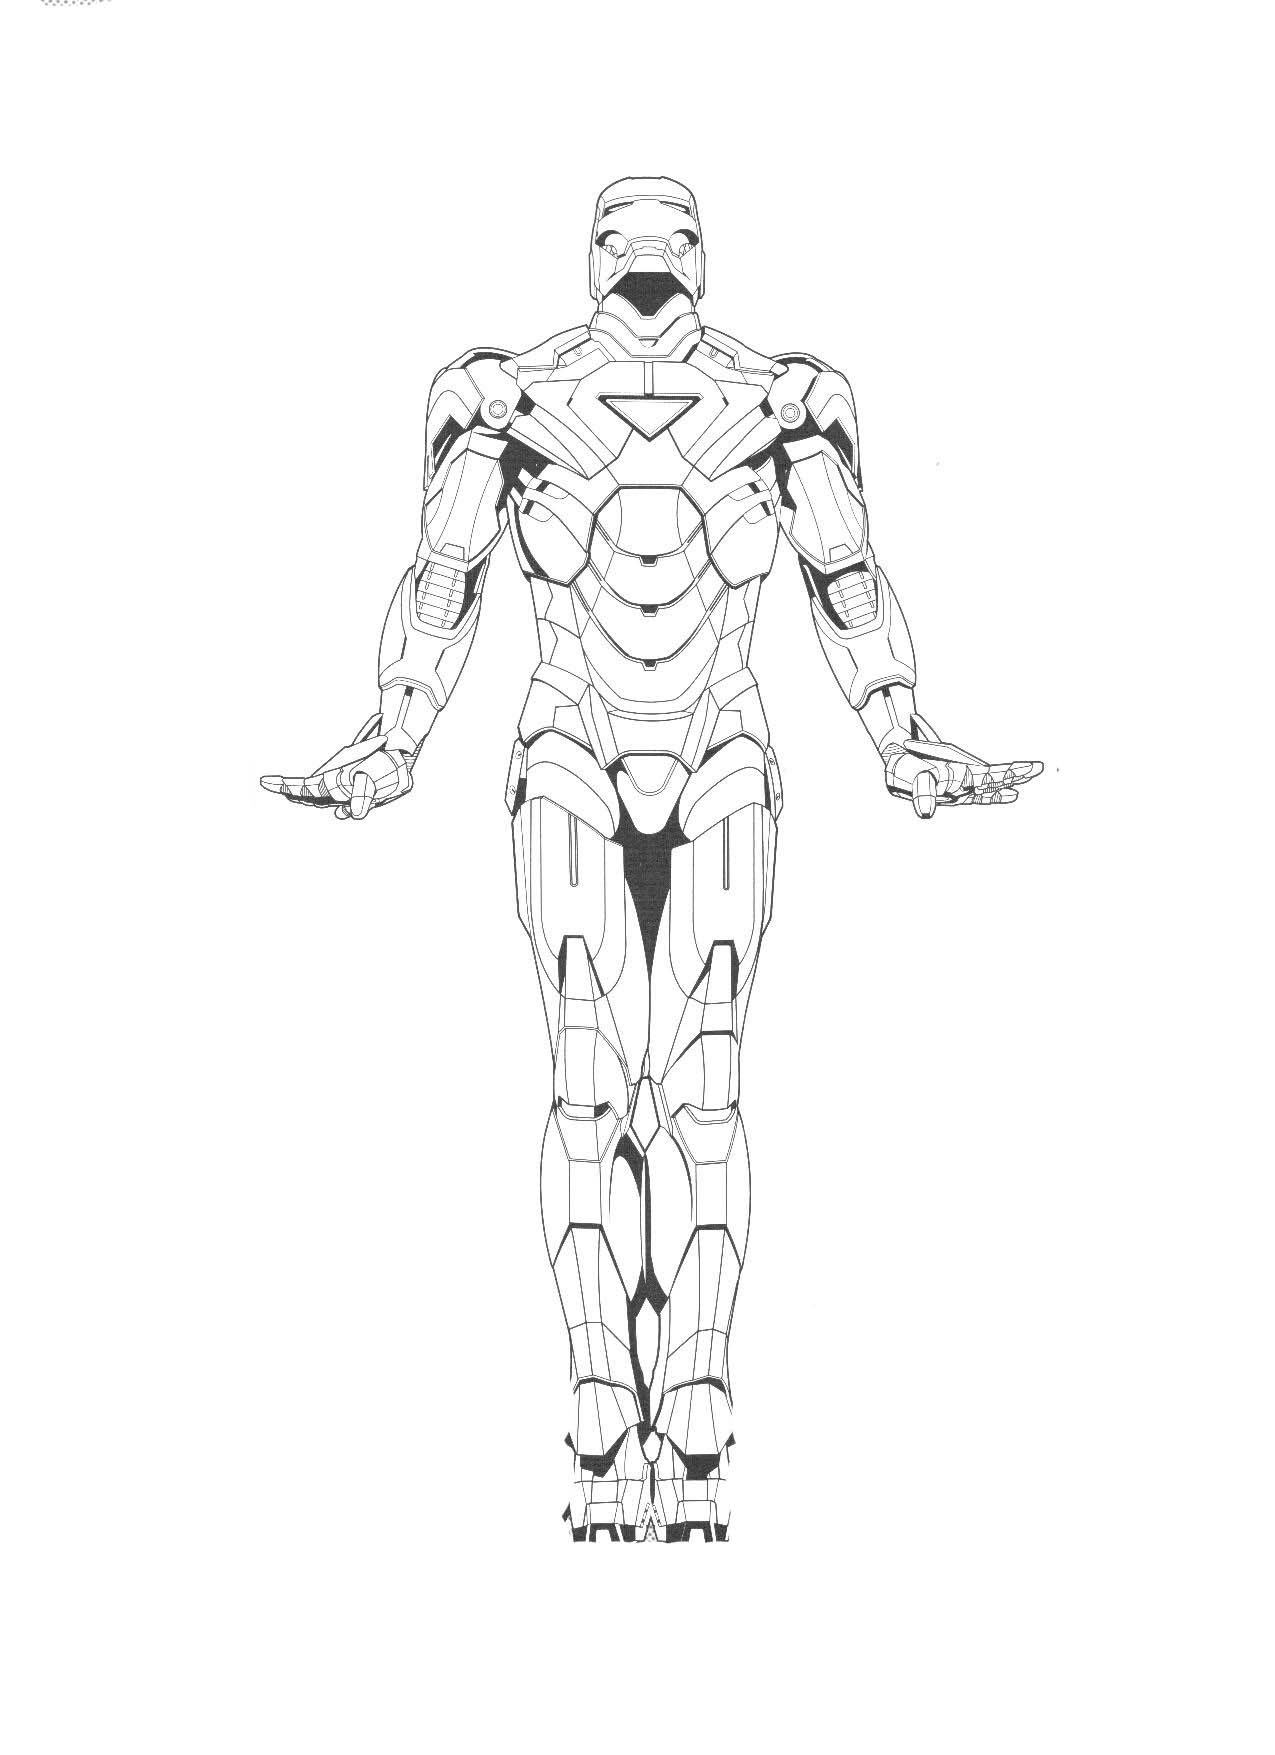 Coloring pages iron man -  Iron Man Coloring Pages On Facebook Twitter 736x387 Free